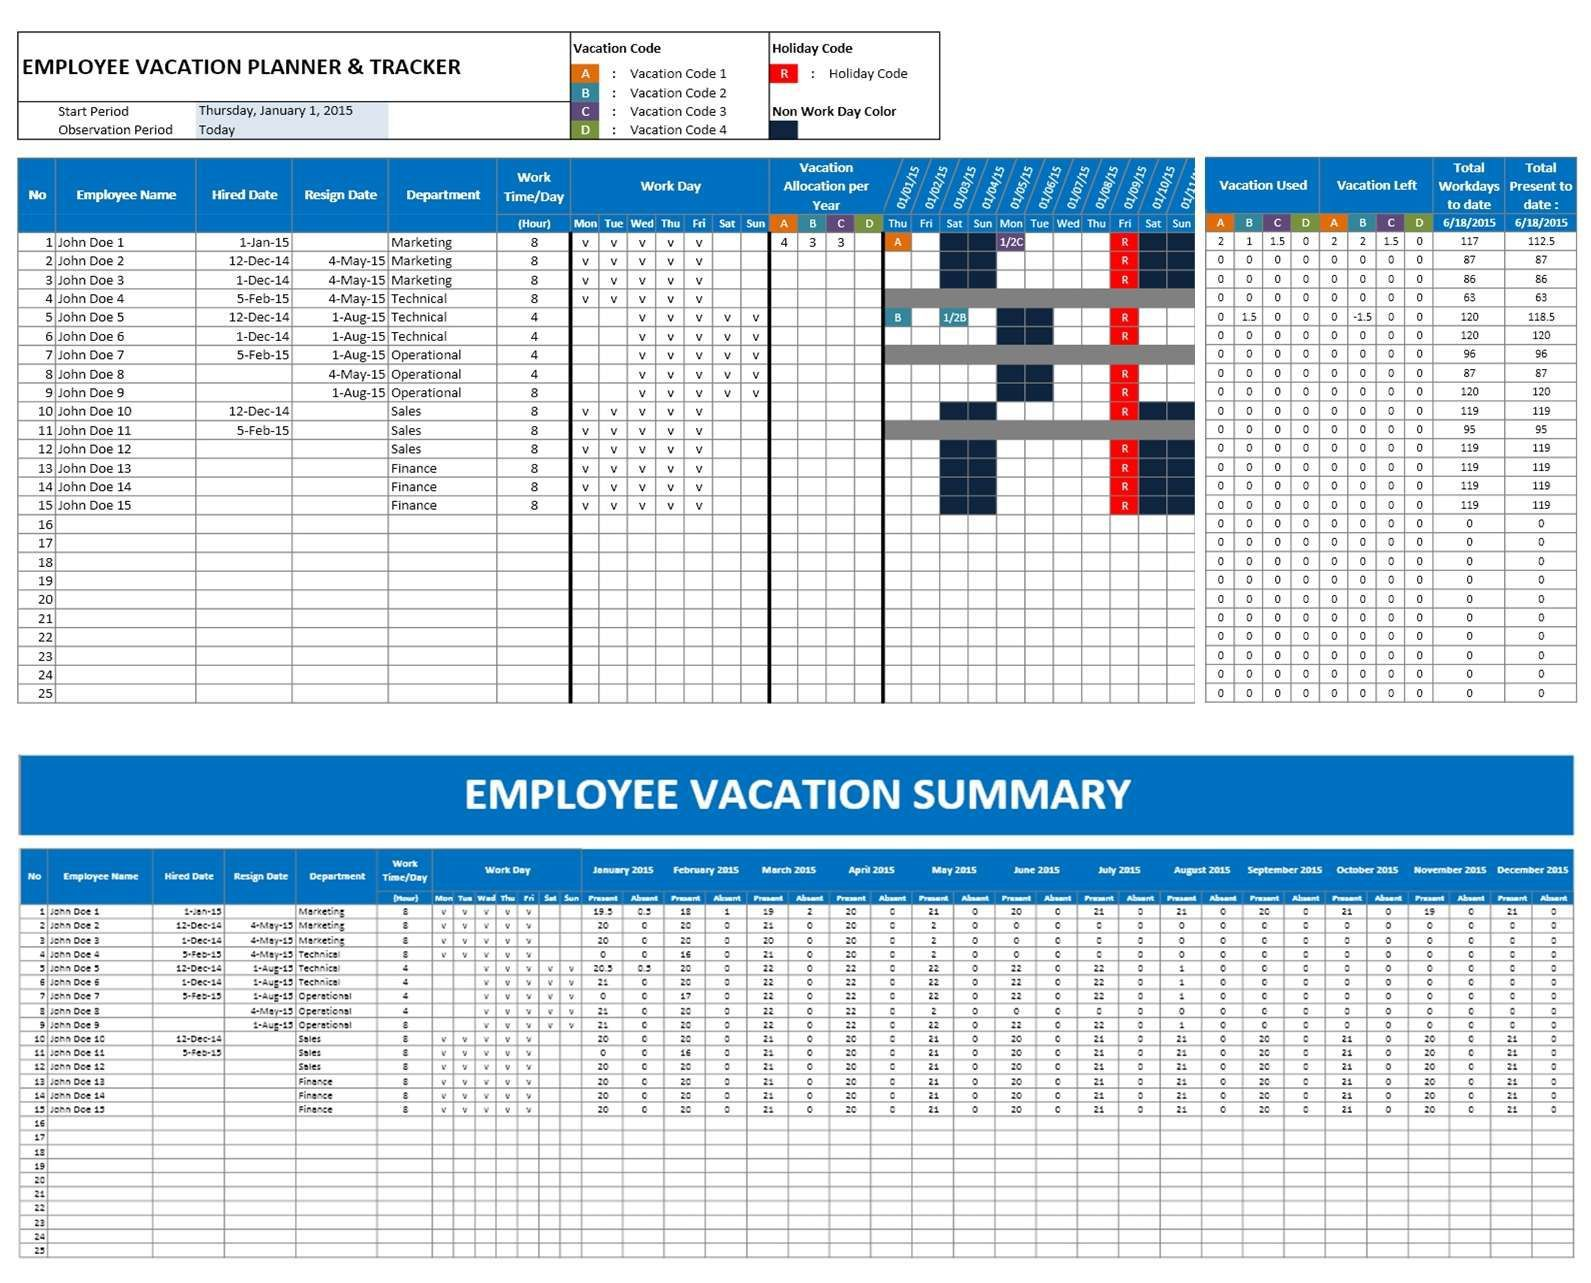 003 Formidable Employee Calendar Template Excel Example  Staff Leave Vacation PlannerFull